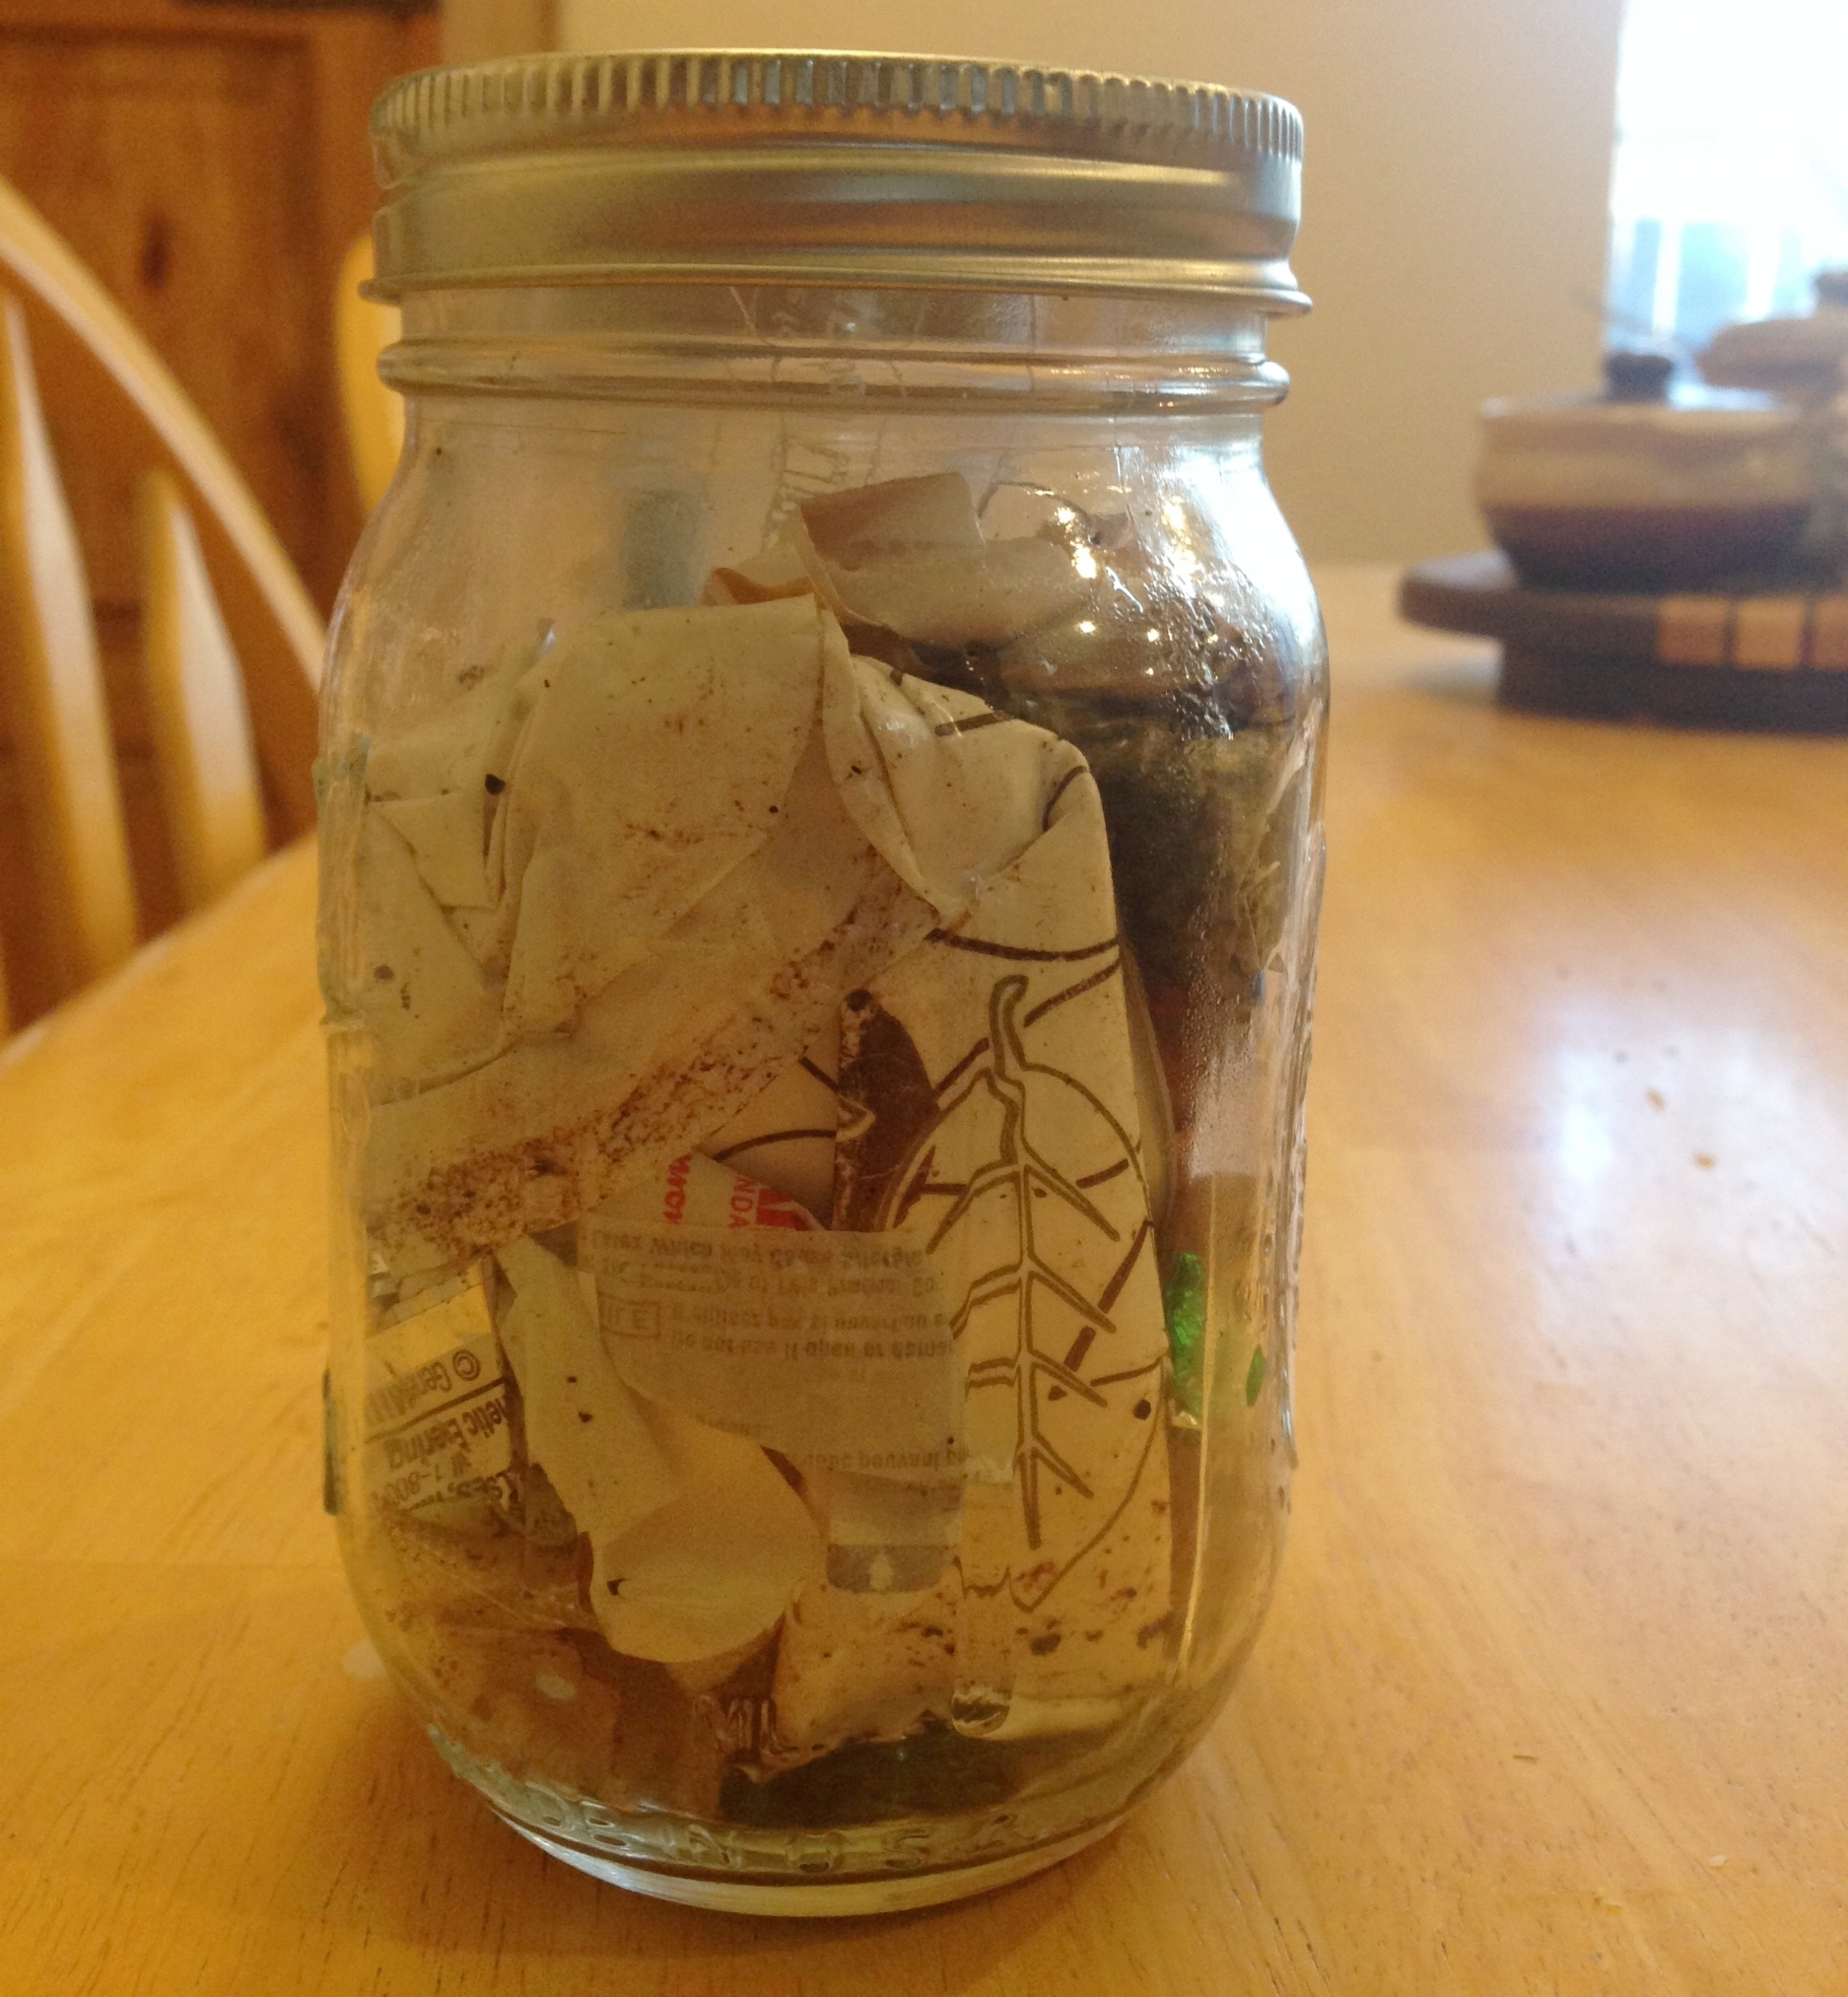 My full mason jar of trash for this week